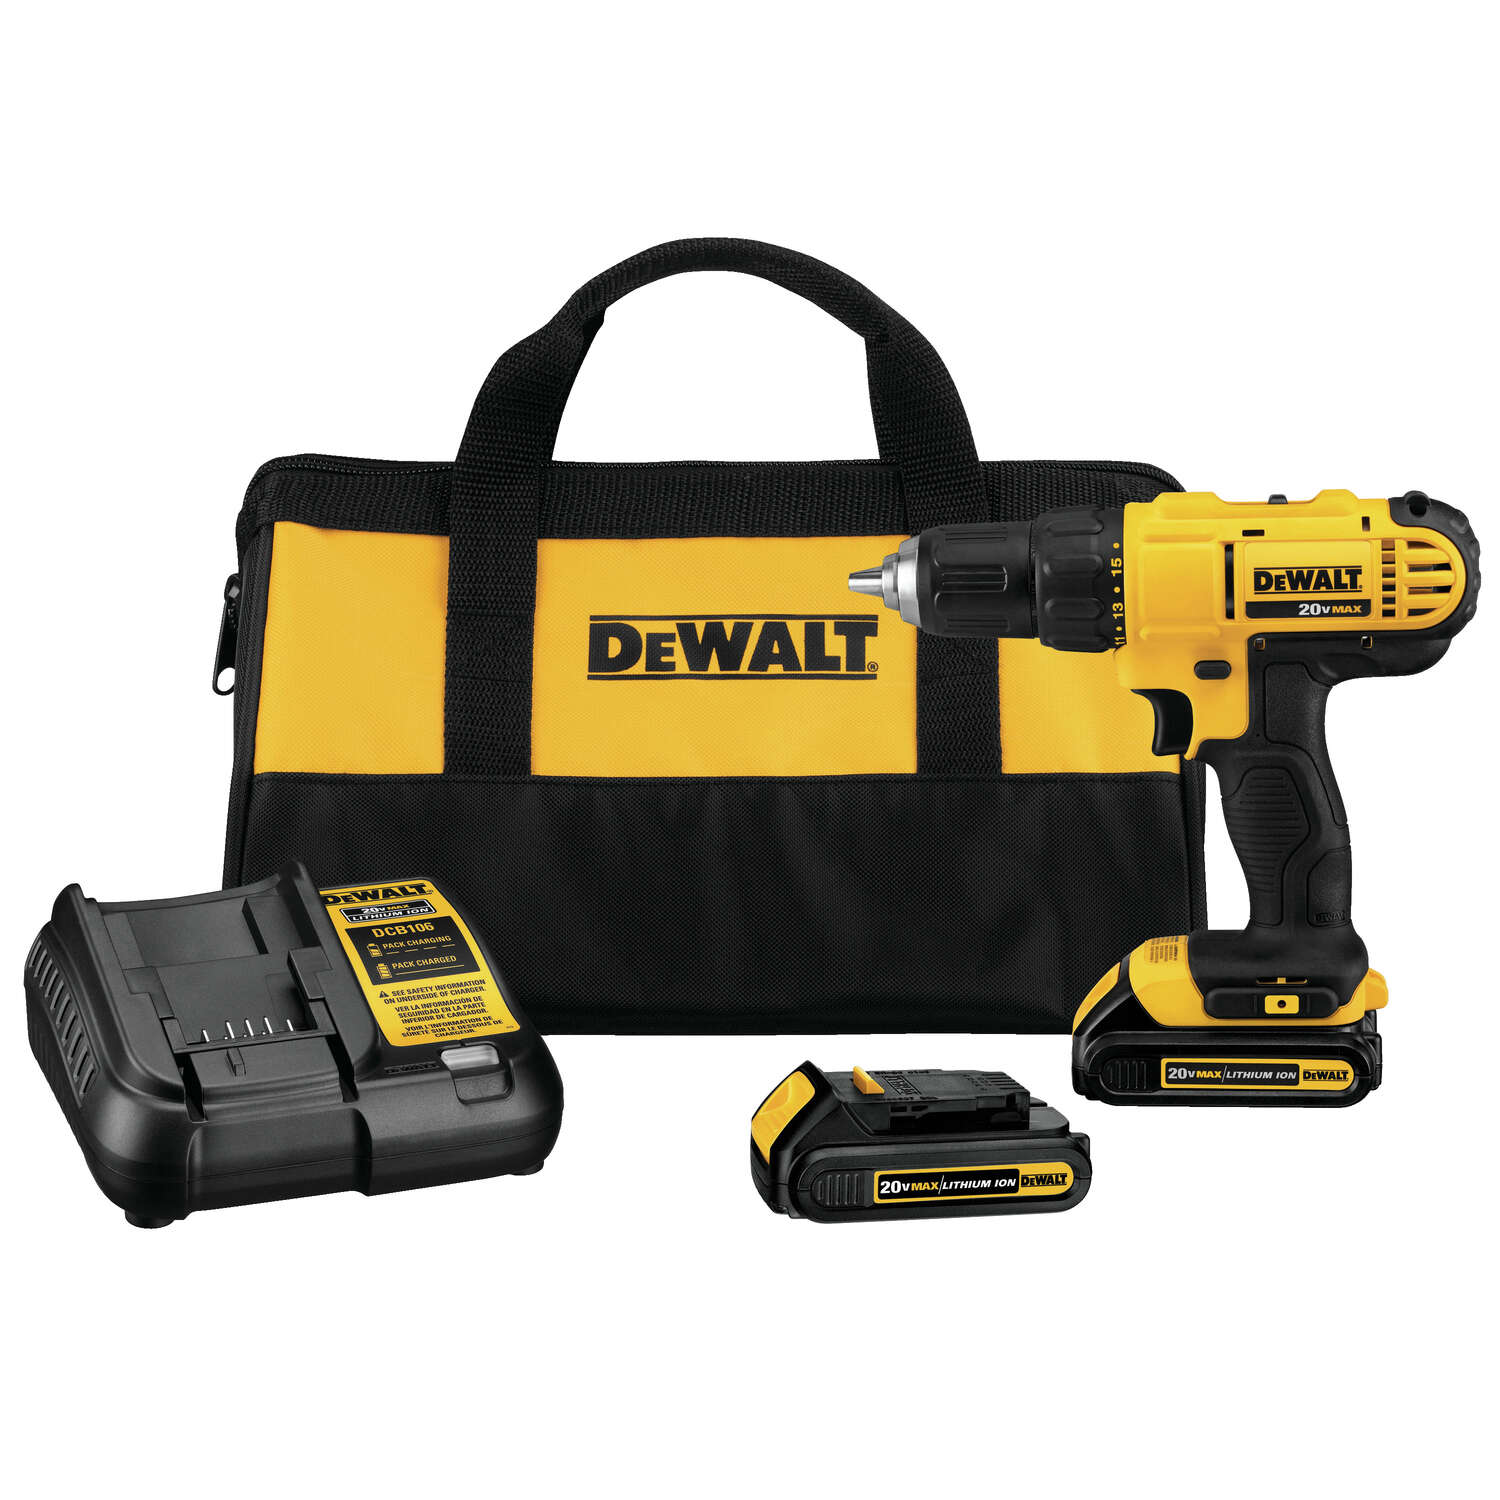 DeWalt 20 V 1/2 in. Brushed Cordless Compact Drill Kit (Battery & Charger)